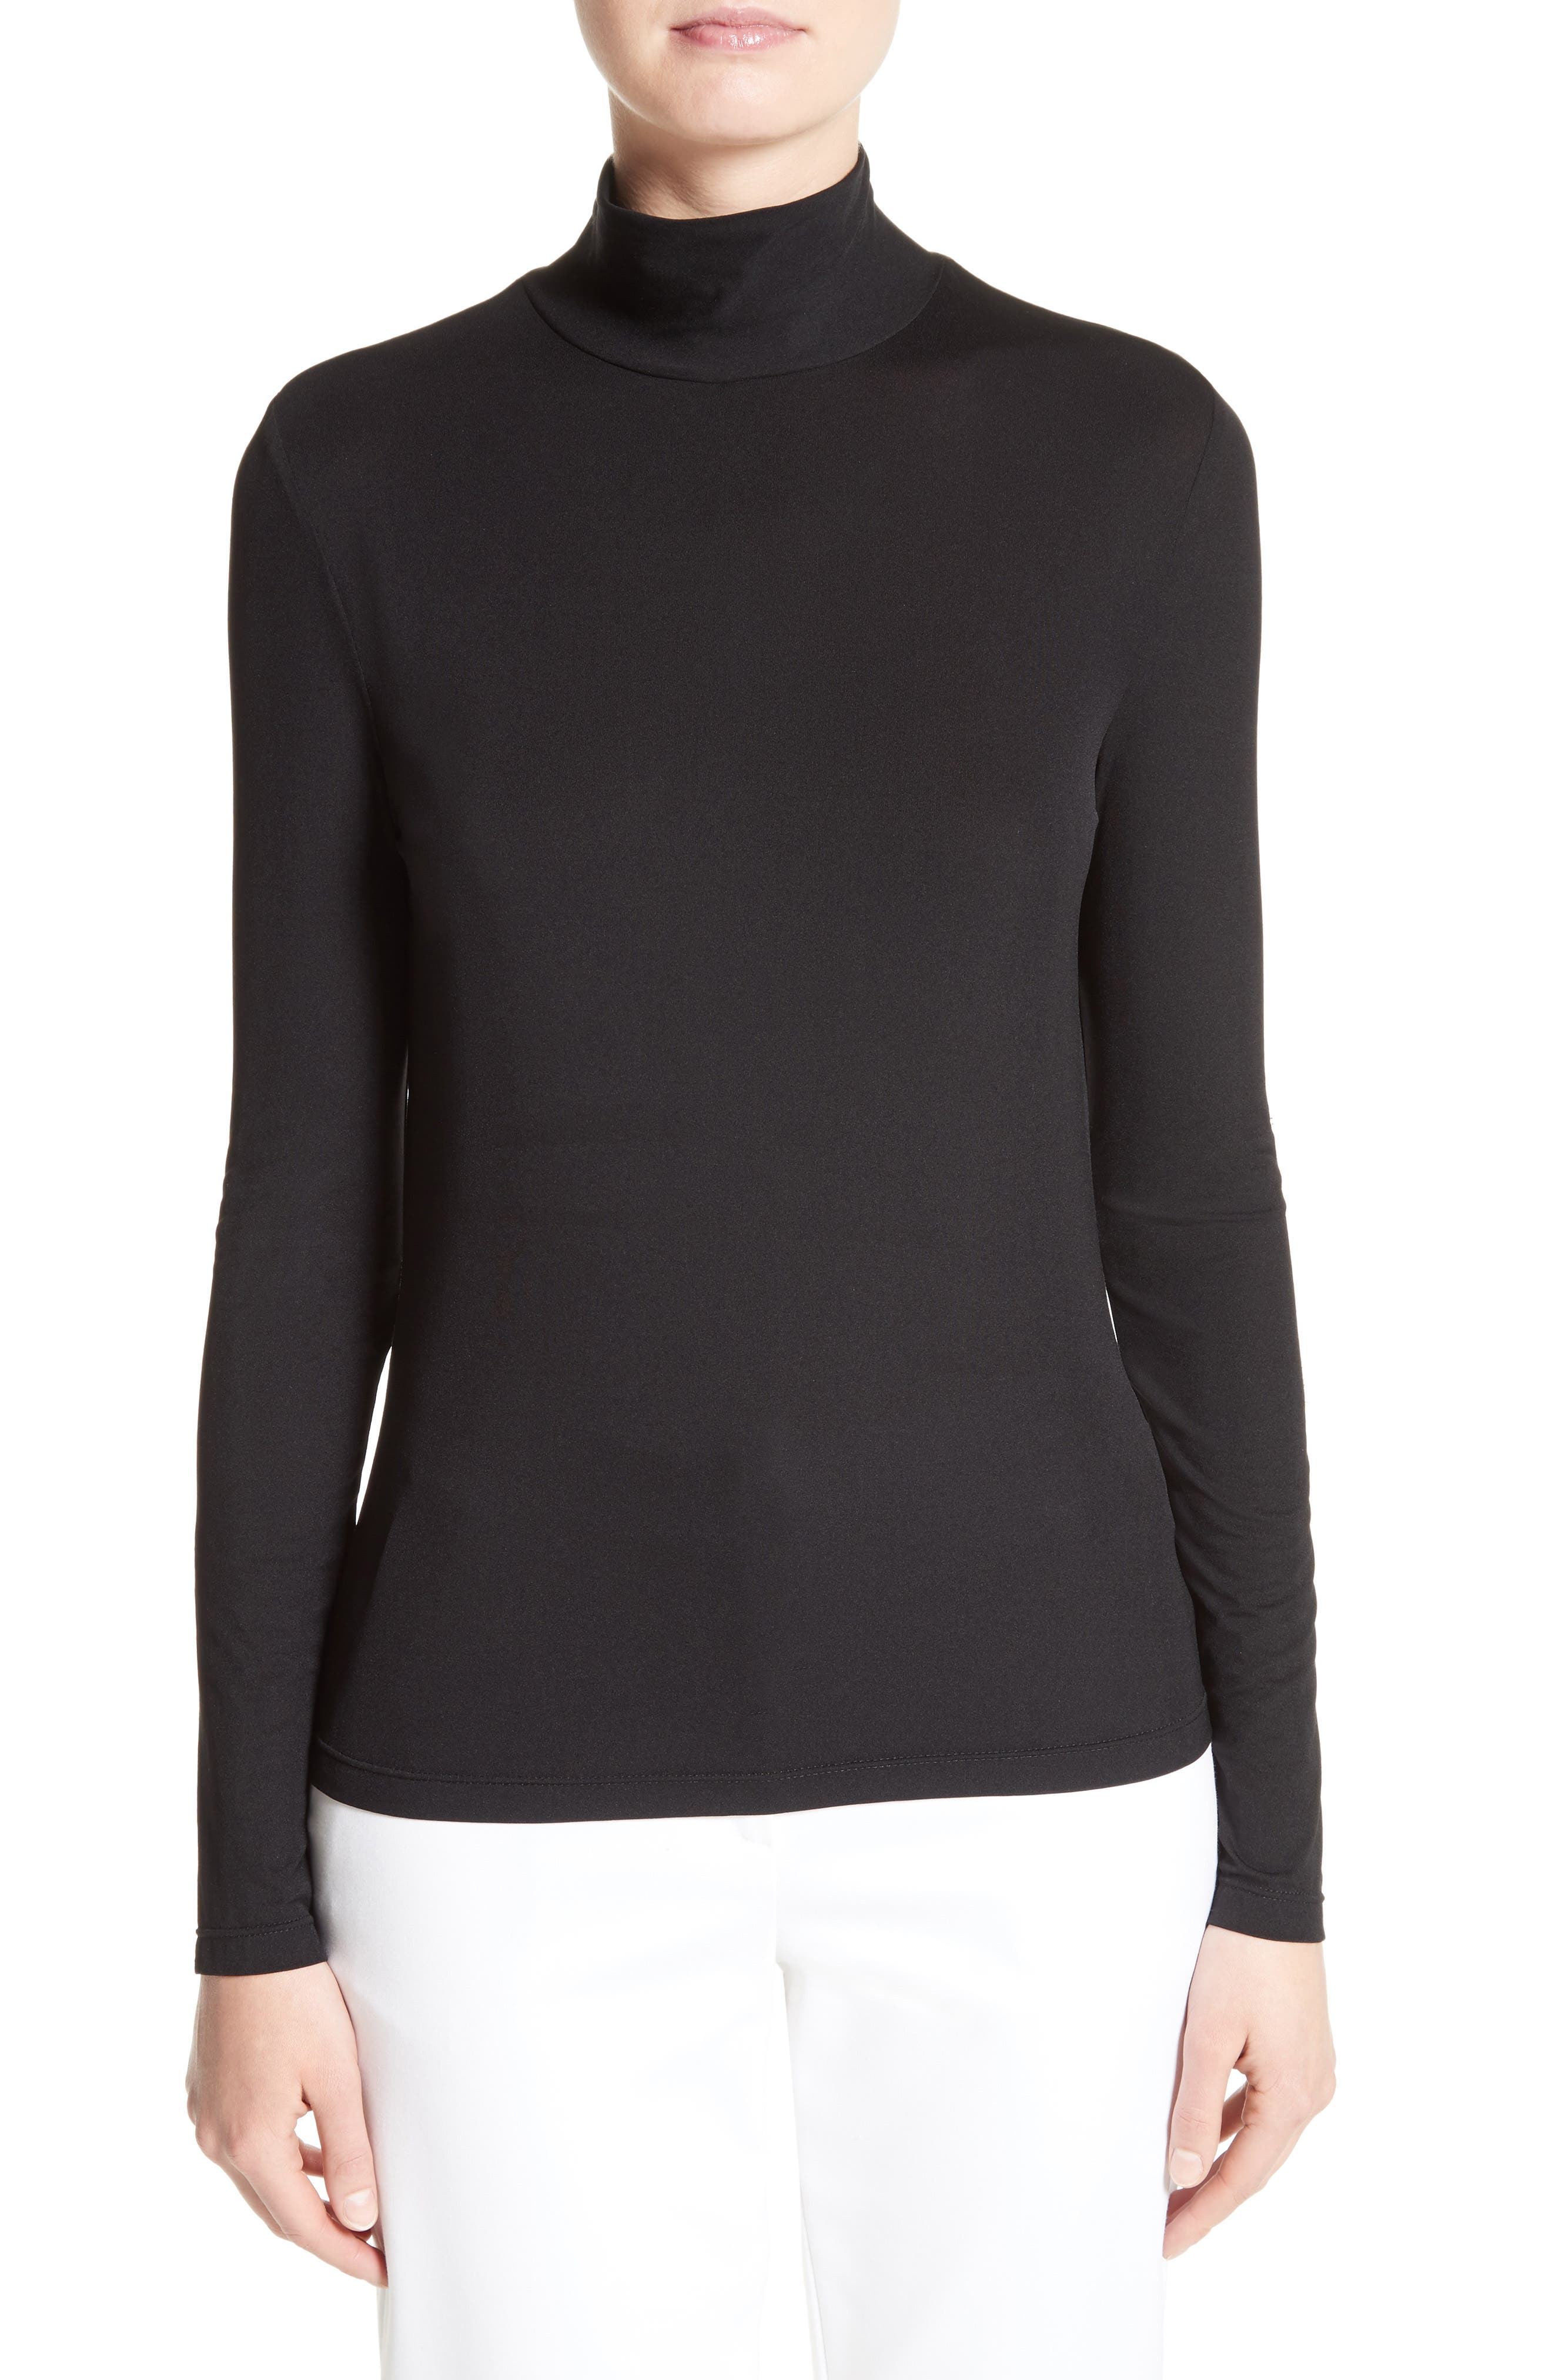 St. John Collection 'Nuda' Fine Jersey Turtleneck Shell